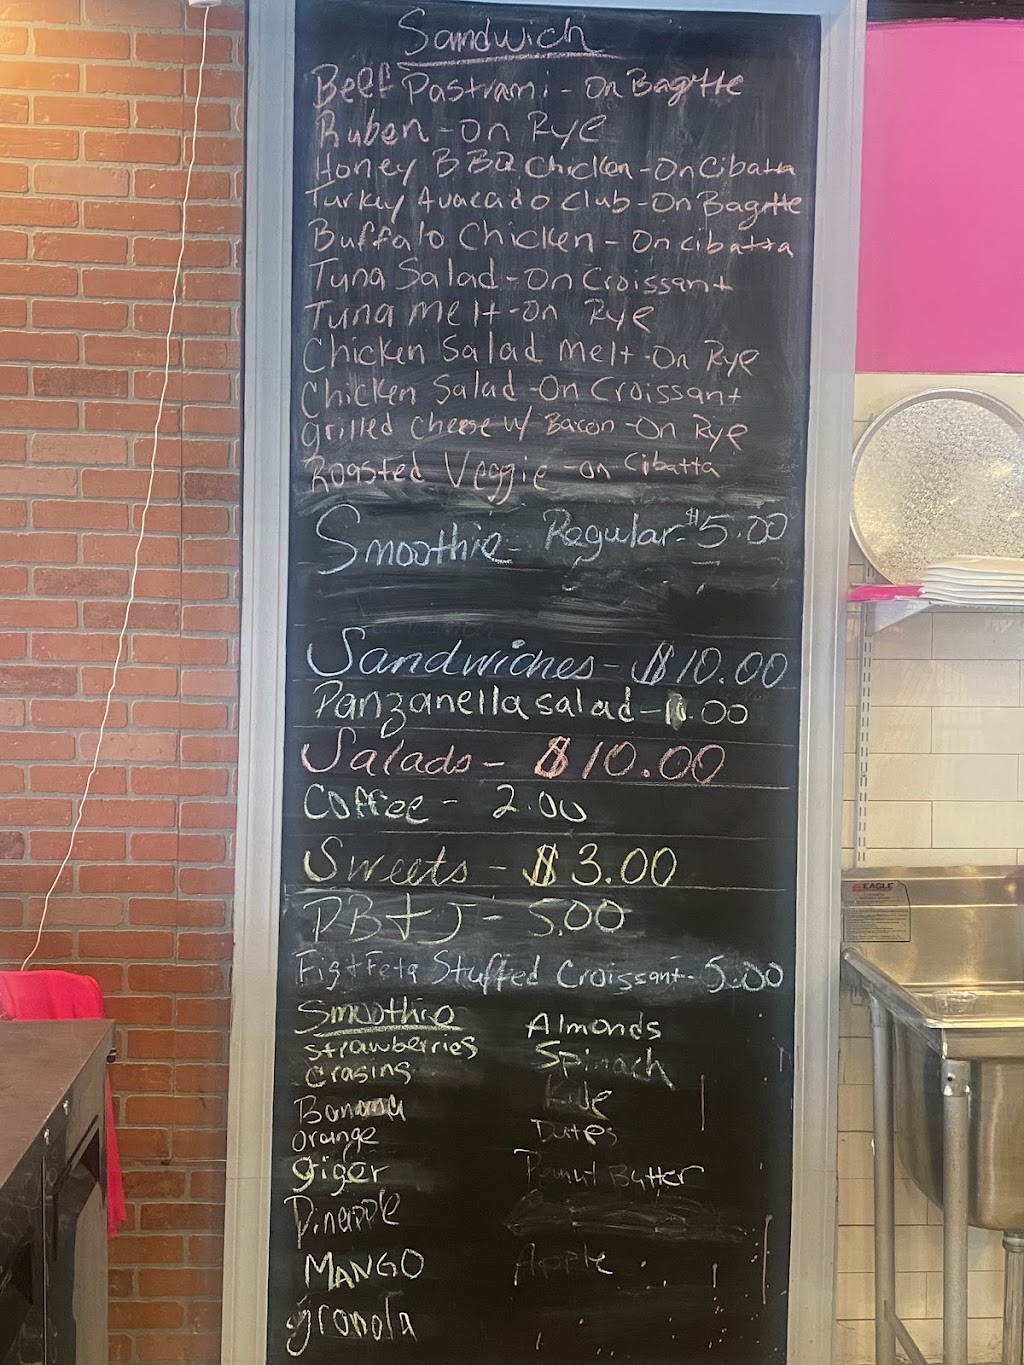 The Pink Cafe | restaurant | 1223 Belmont Ave, Philadelphia, PA 19104, USA | 2675309457 OR +1 267-530-9457